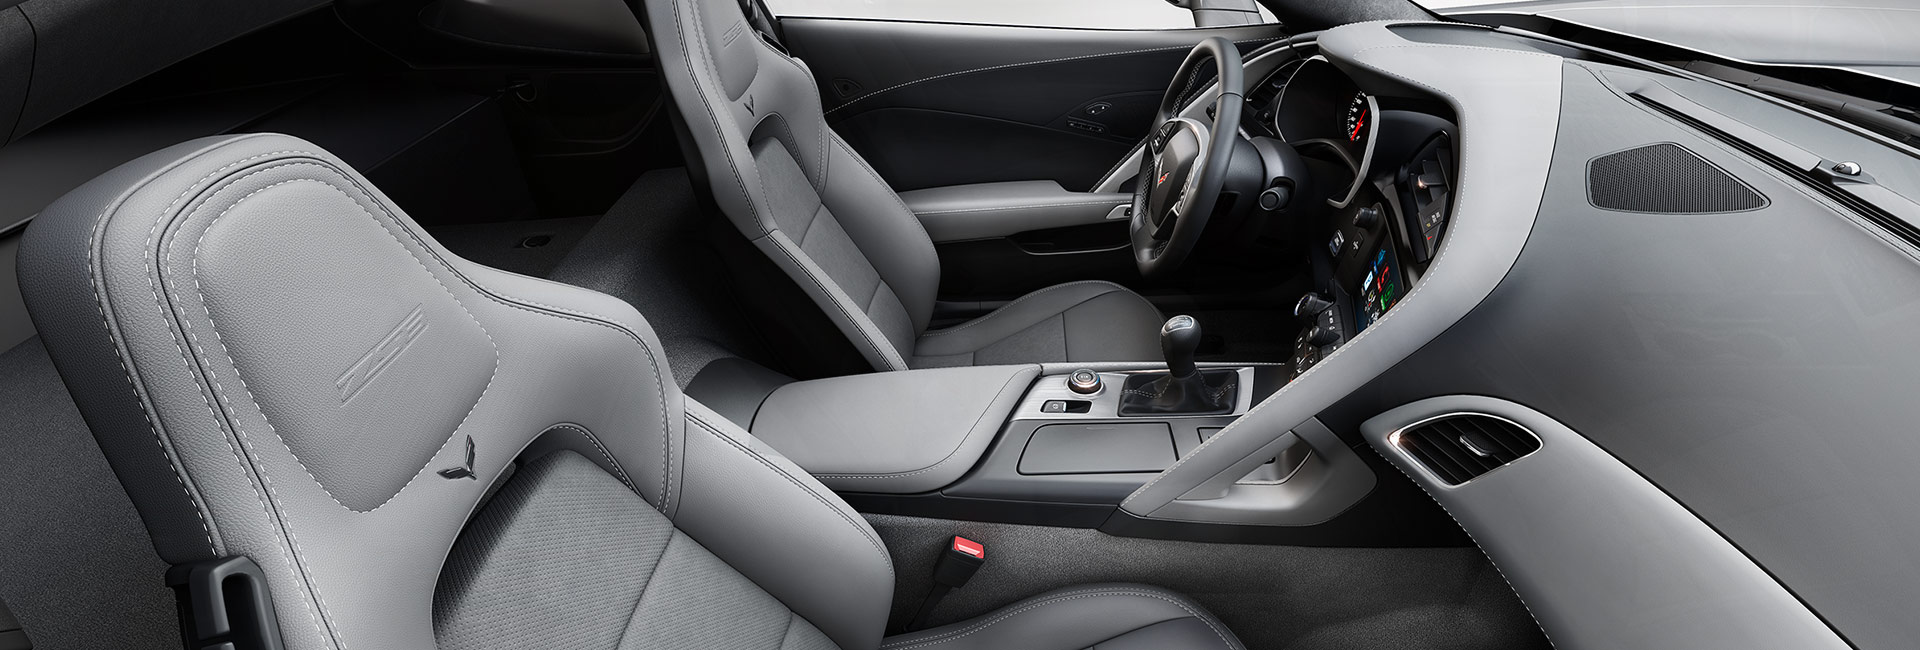 Picture of the interior of the 2020 Chevy Camaro